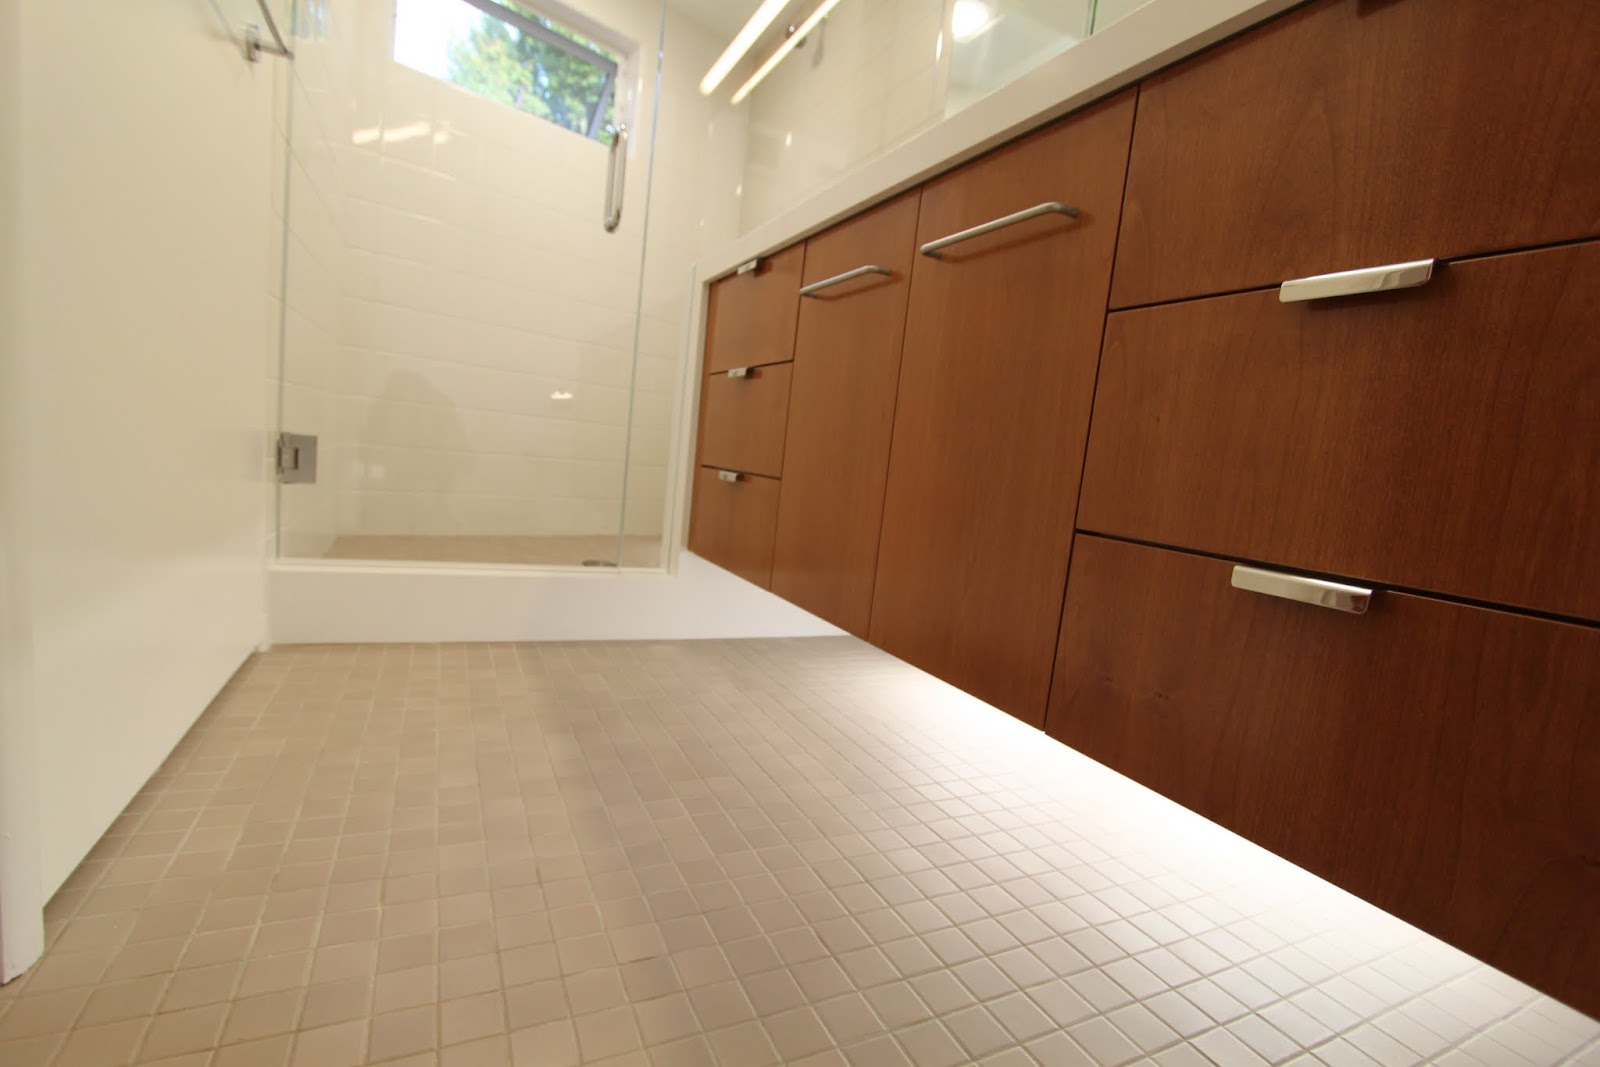 Top five favorite features mid century bathroom remodel Mid century modern flooring